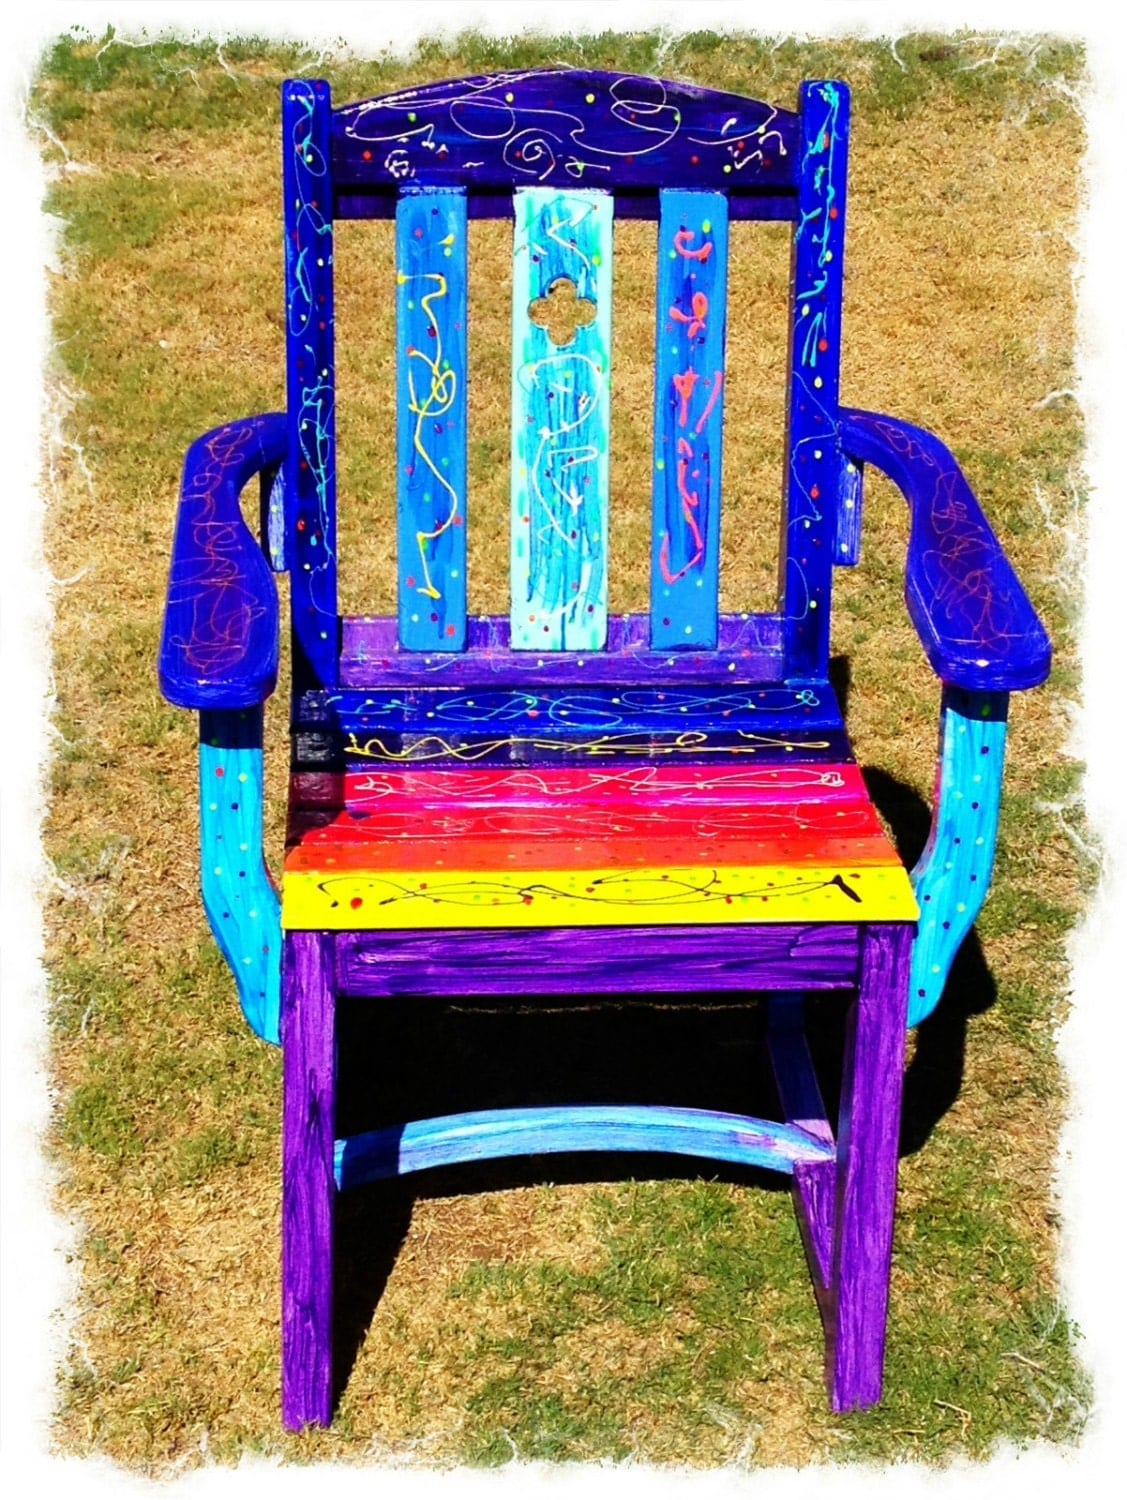 Rainbow Funky Vibrant Chair Ooak Uniquely Hand Painted Strong